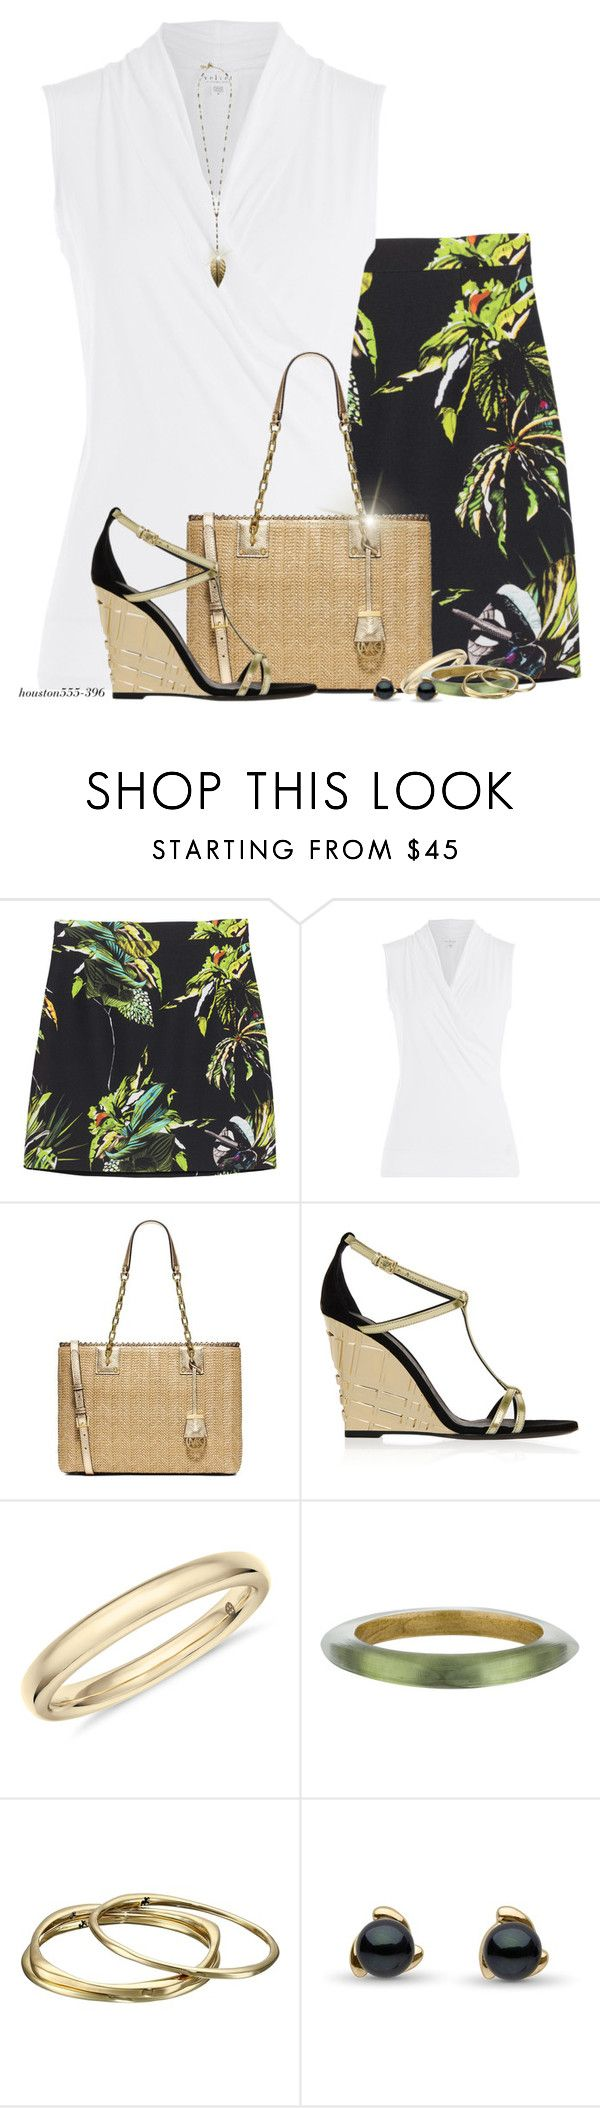 """Tropical Print Skirt"" by houston555-396 ❤ liked on Polyvore featuring Proenza Schouler, Velvet, MICHAEL Michael Kors, Burberry, Alexis Bittar, Karen Kane and Boho Gal"